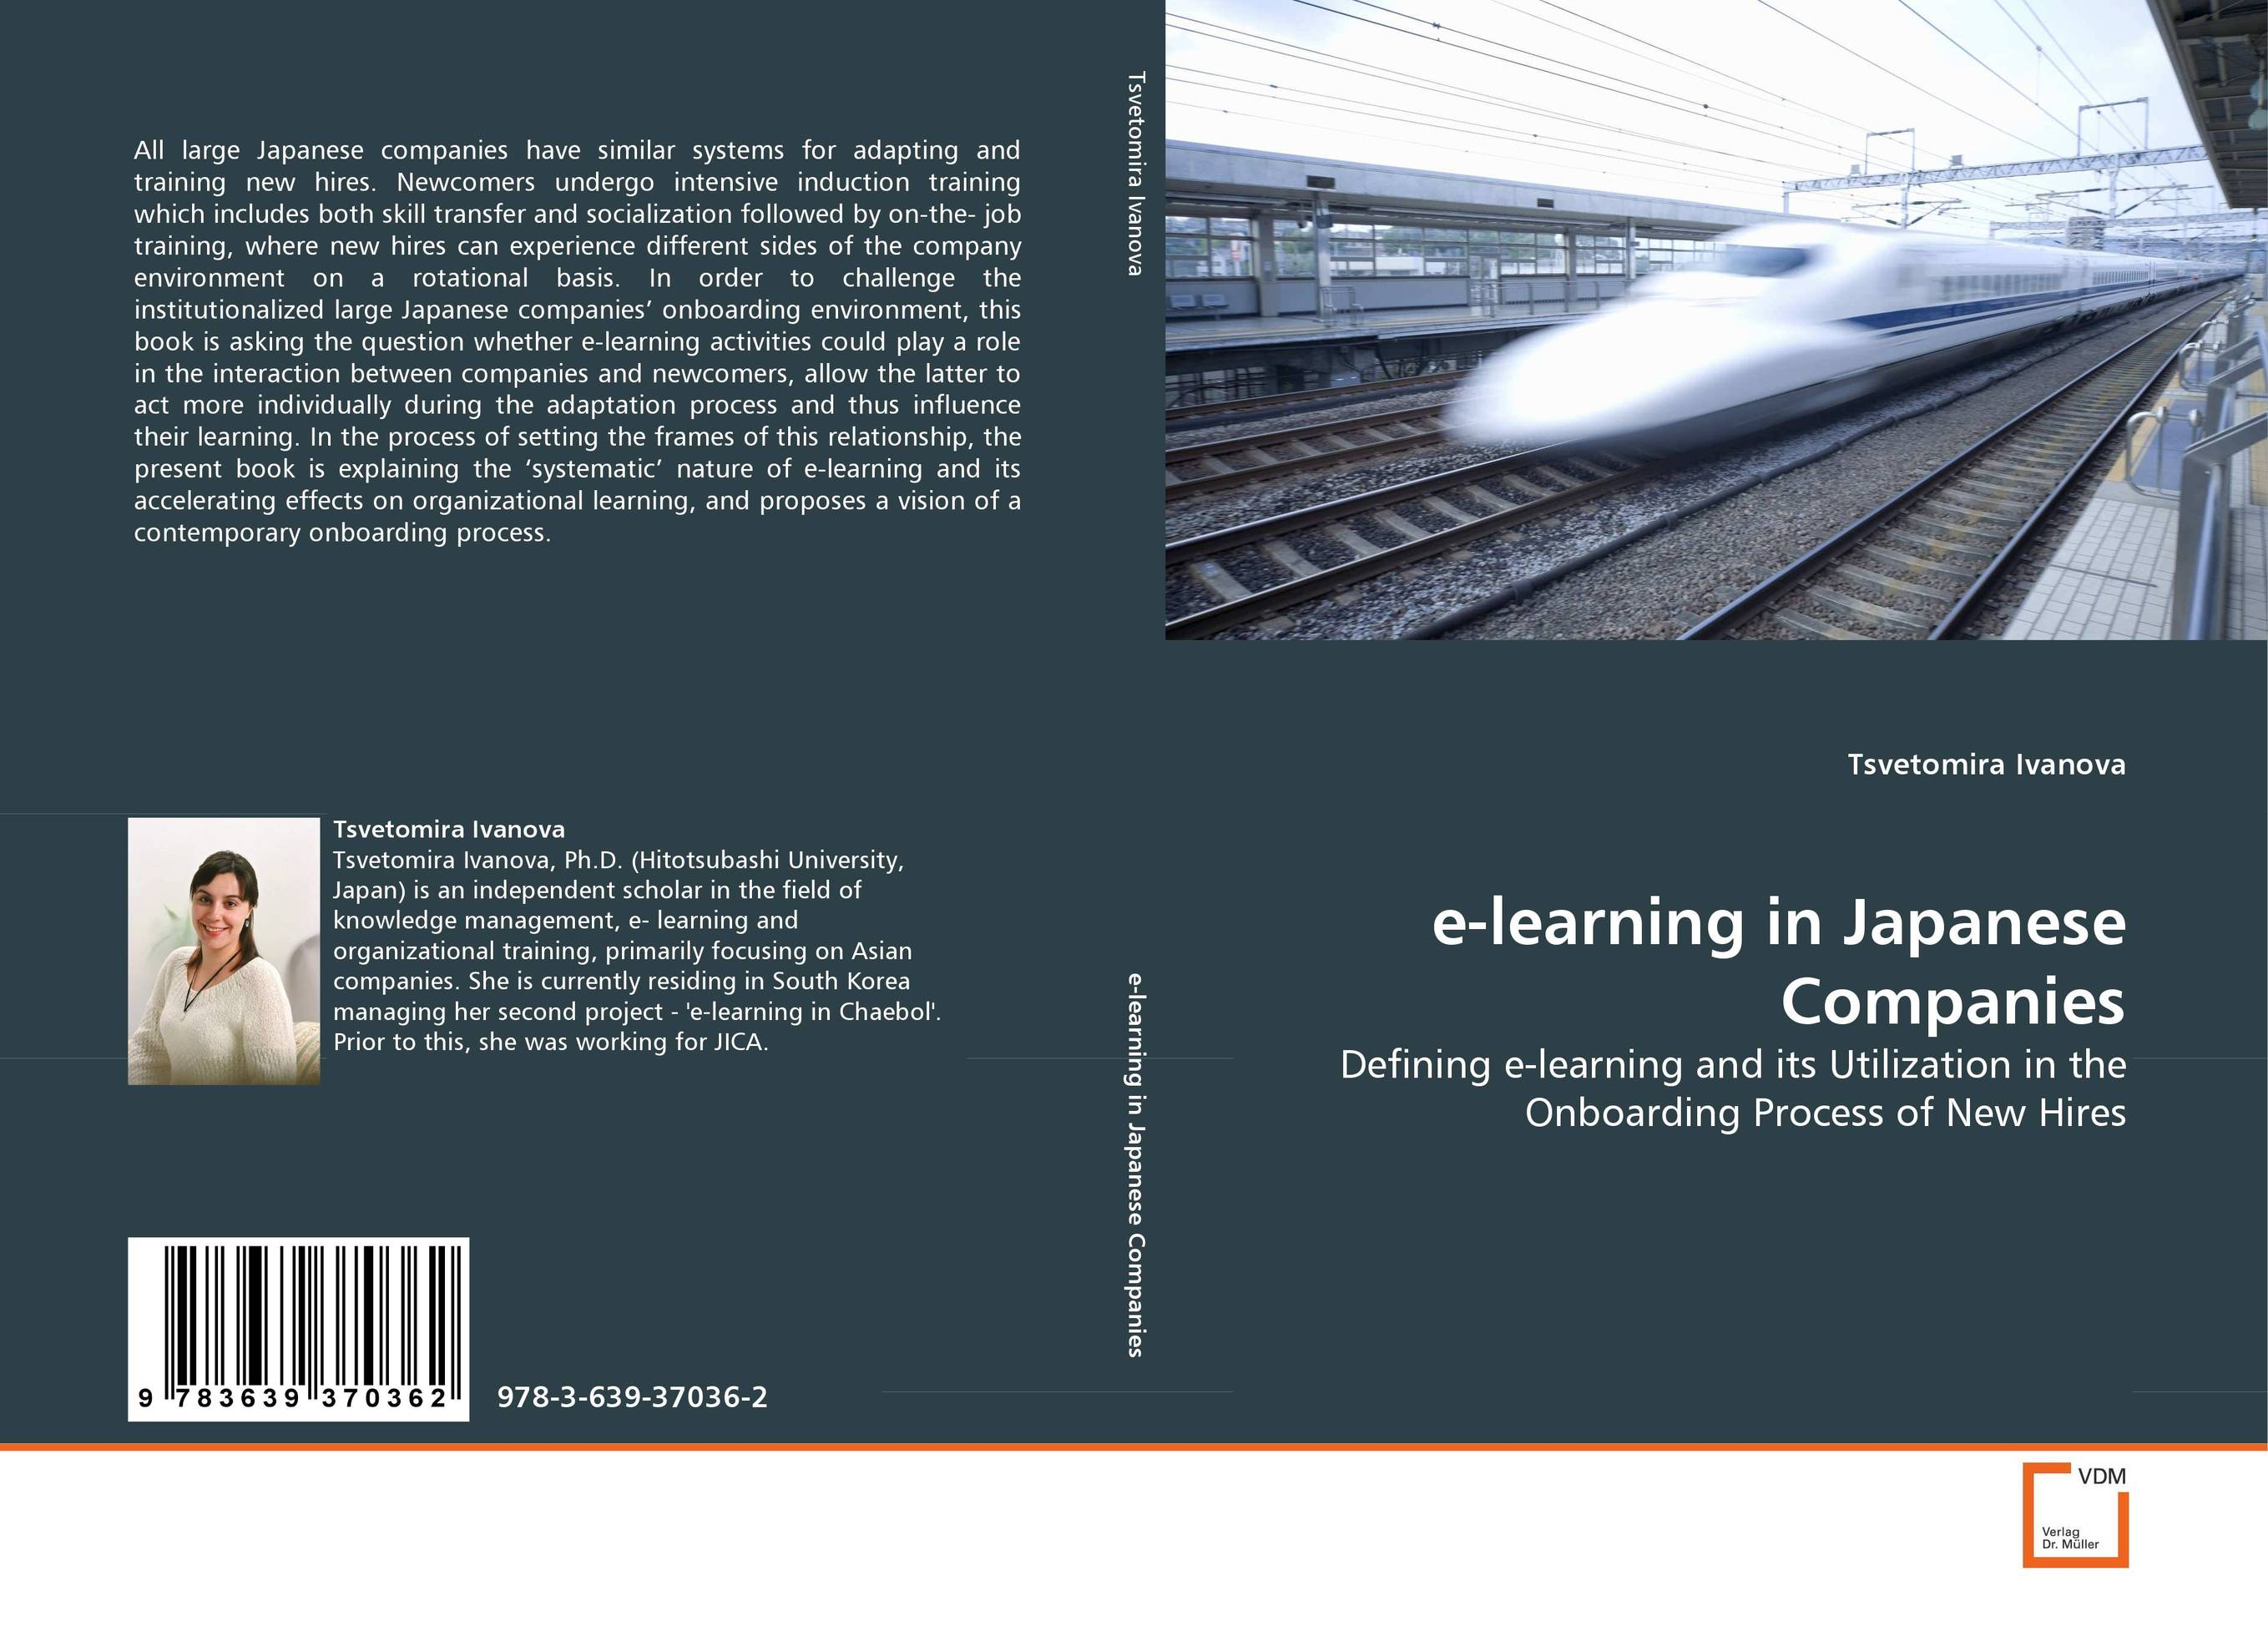 e-learning in Japanese Companies